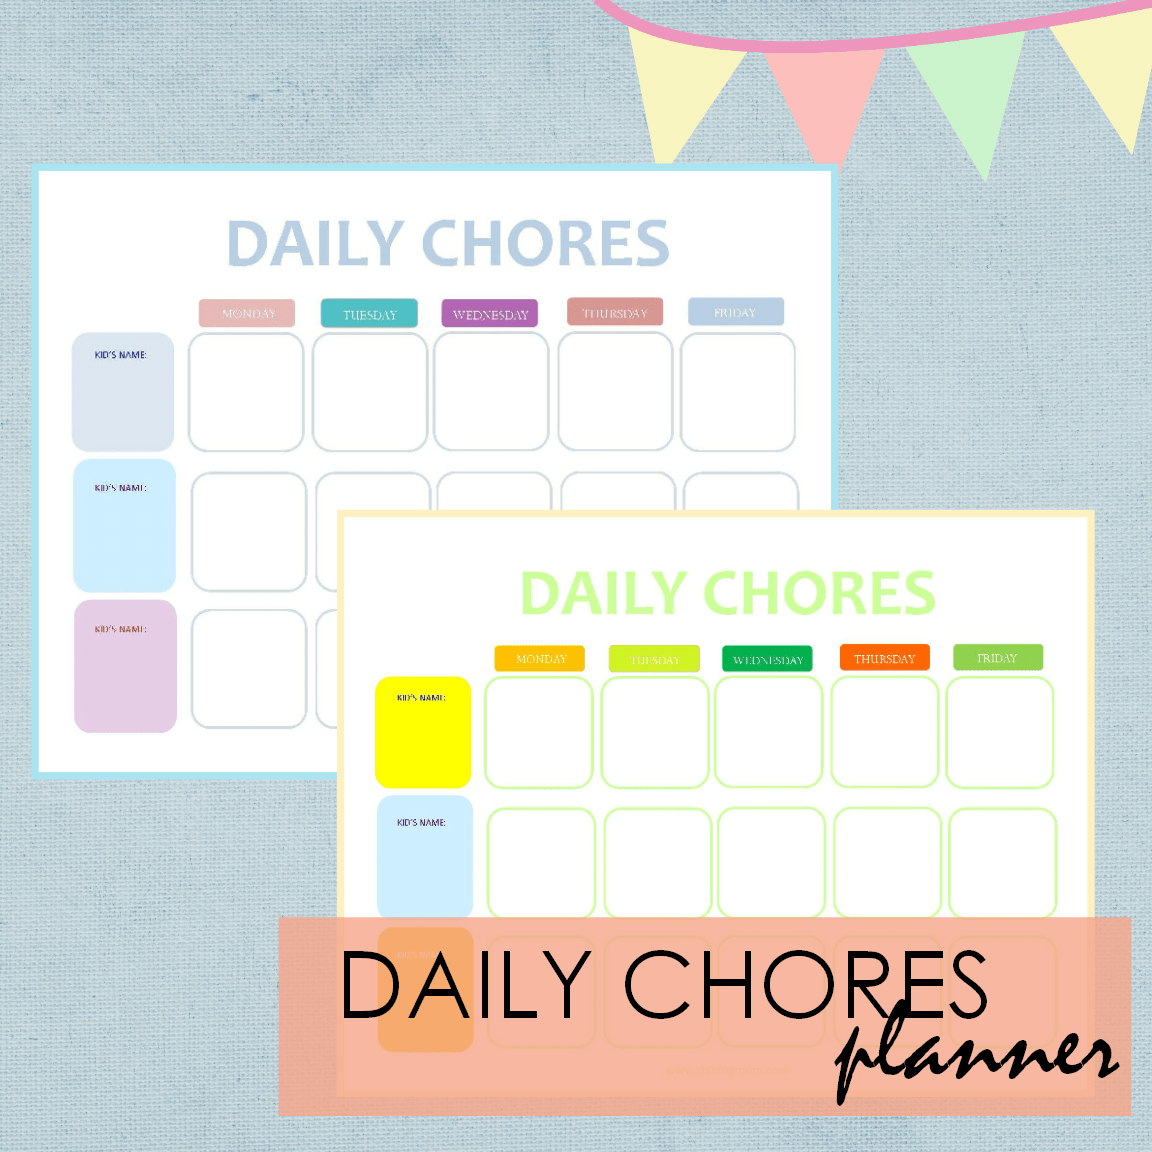 FREE DAILY CHORES PLANNER